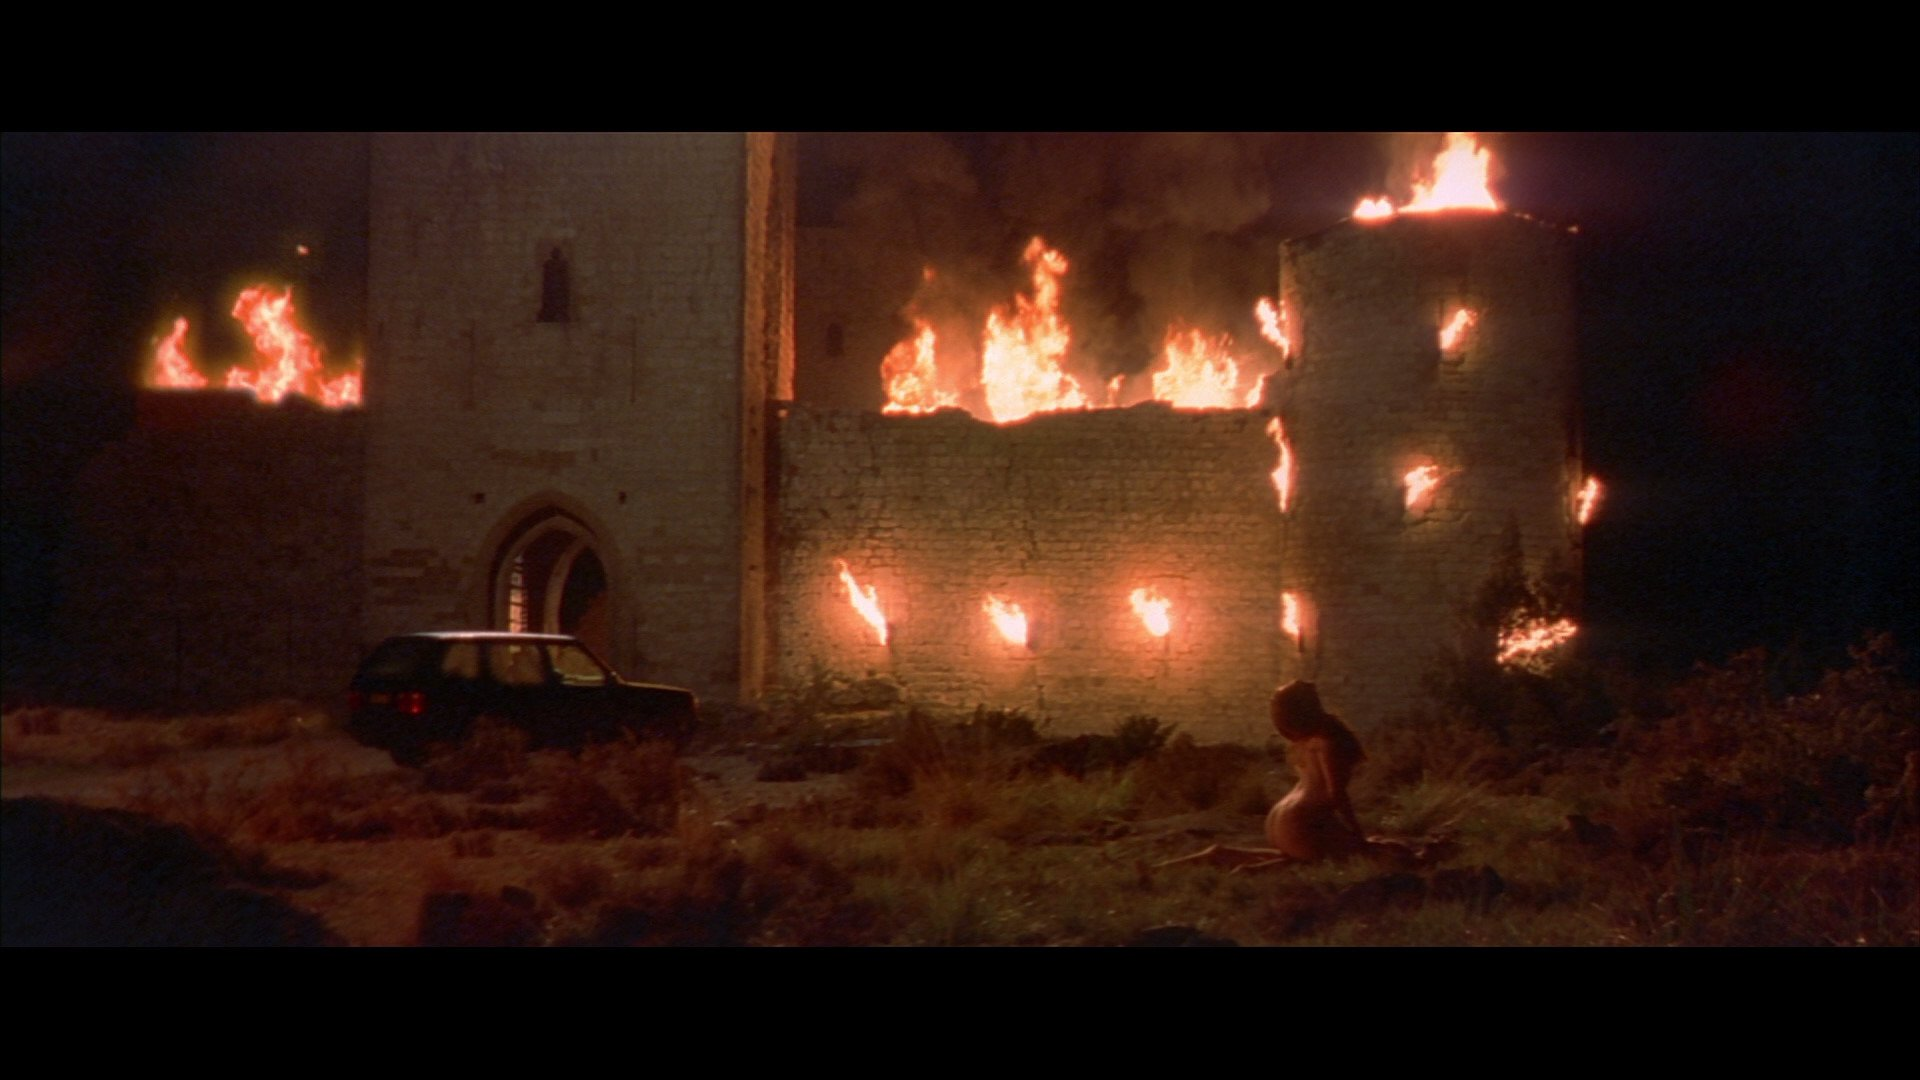 A still from 'The Ninth Gate' (1999)